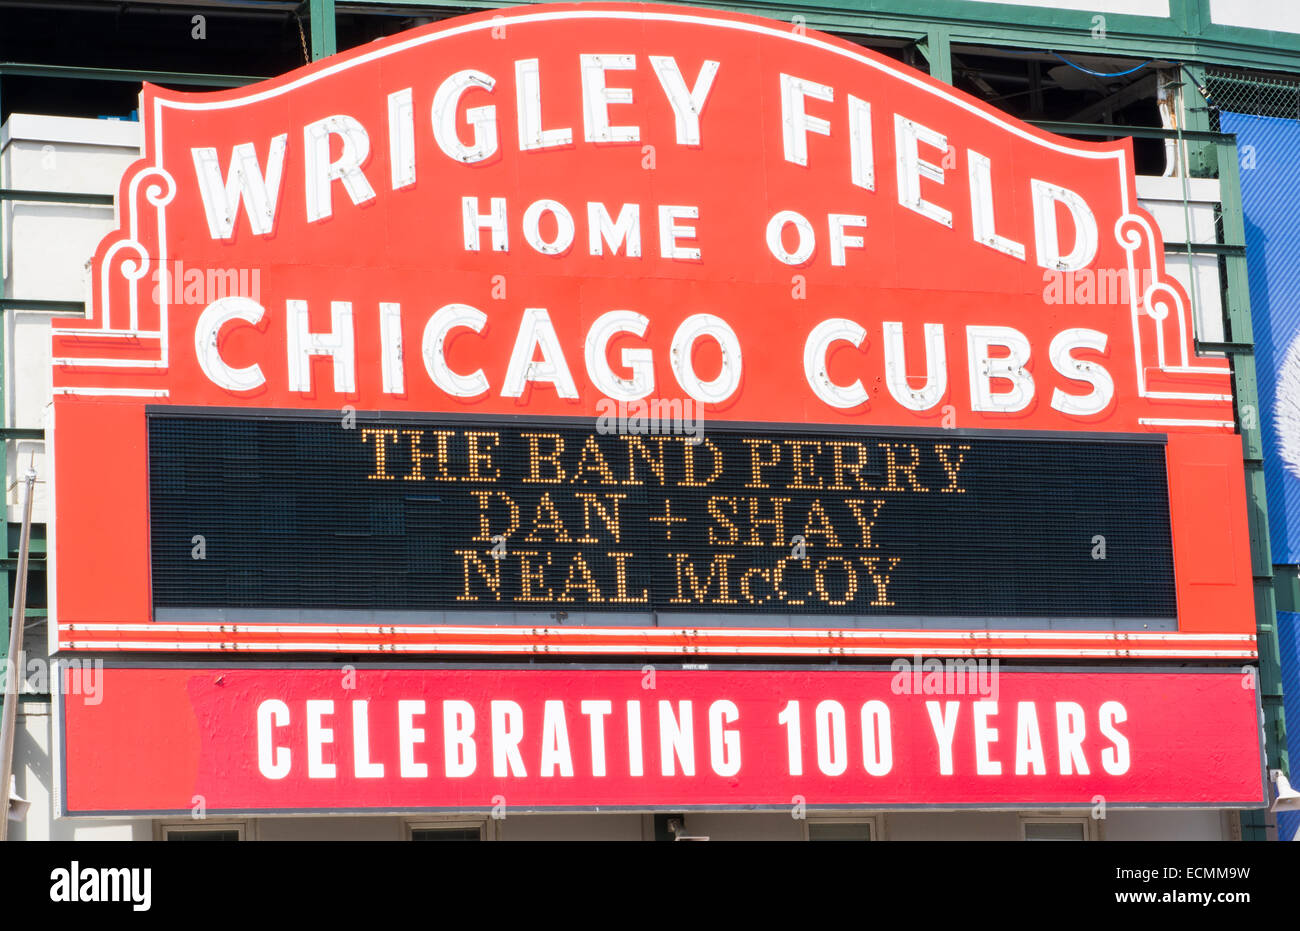 Chicago Illinois famous Wrigley Field sign for Major League Baseball team of Chicago Cubs built in 1914 - Stock Image